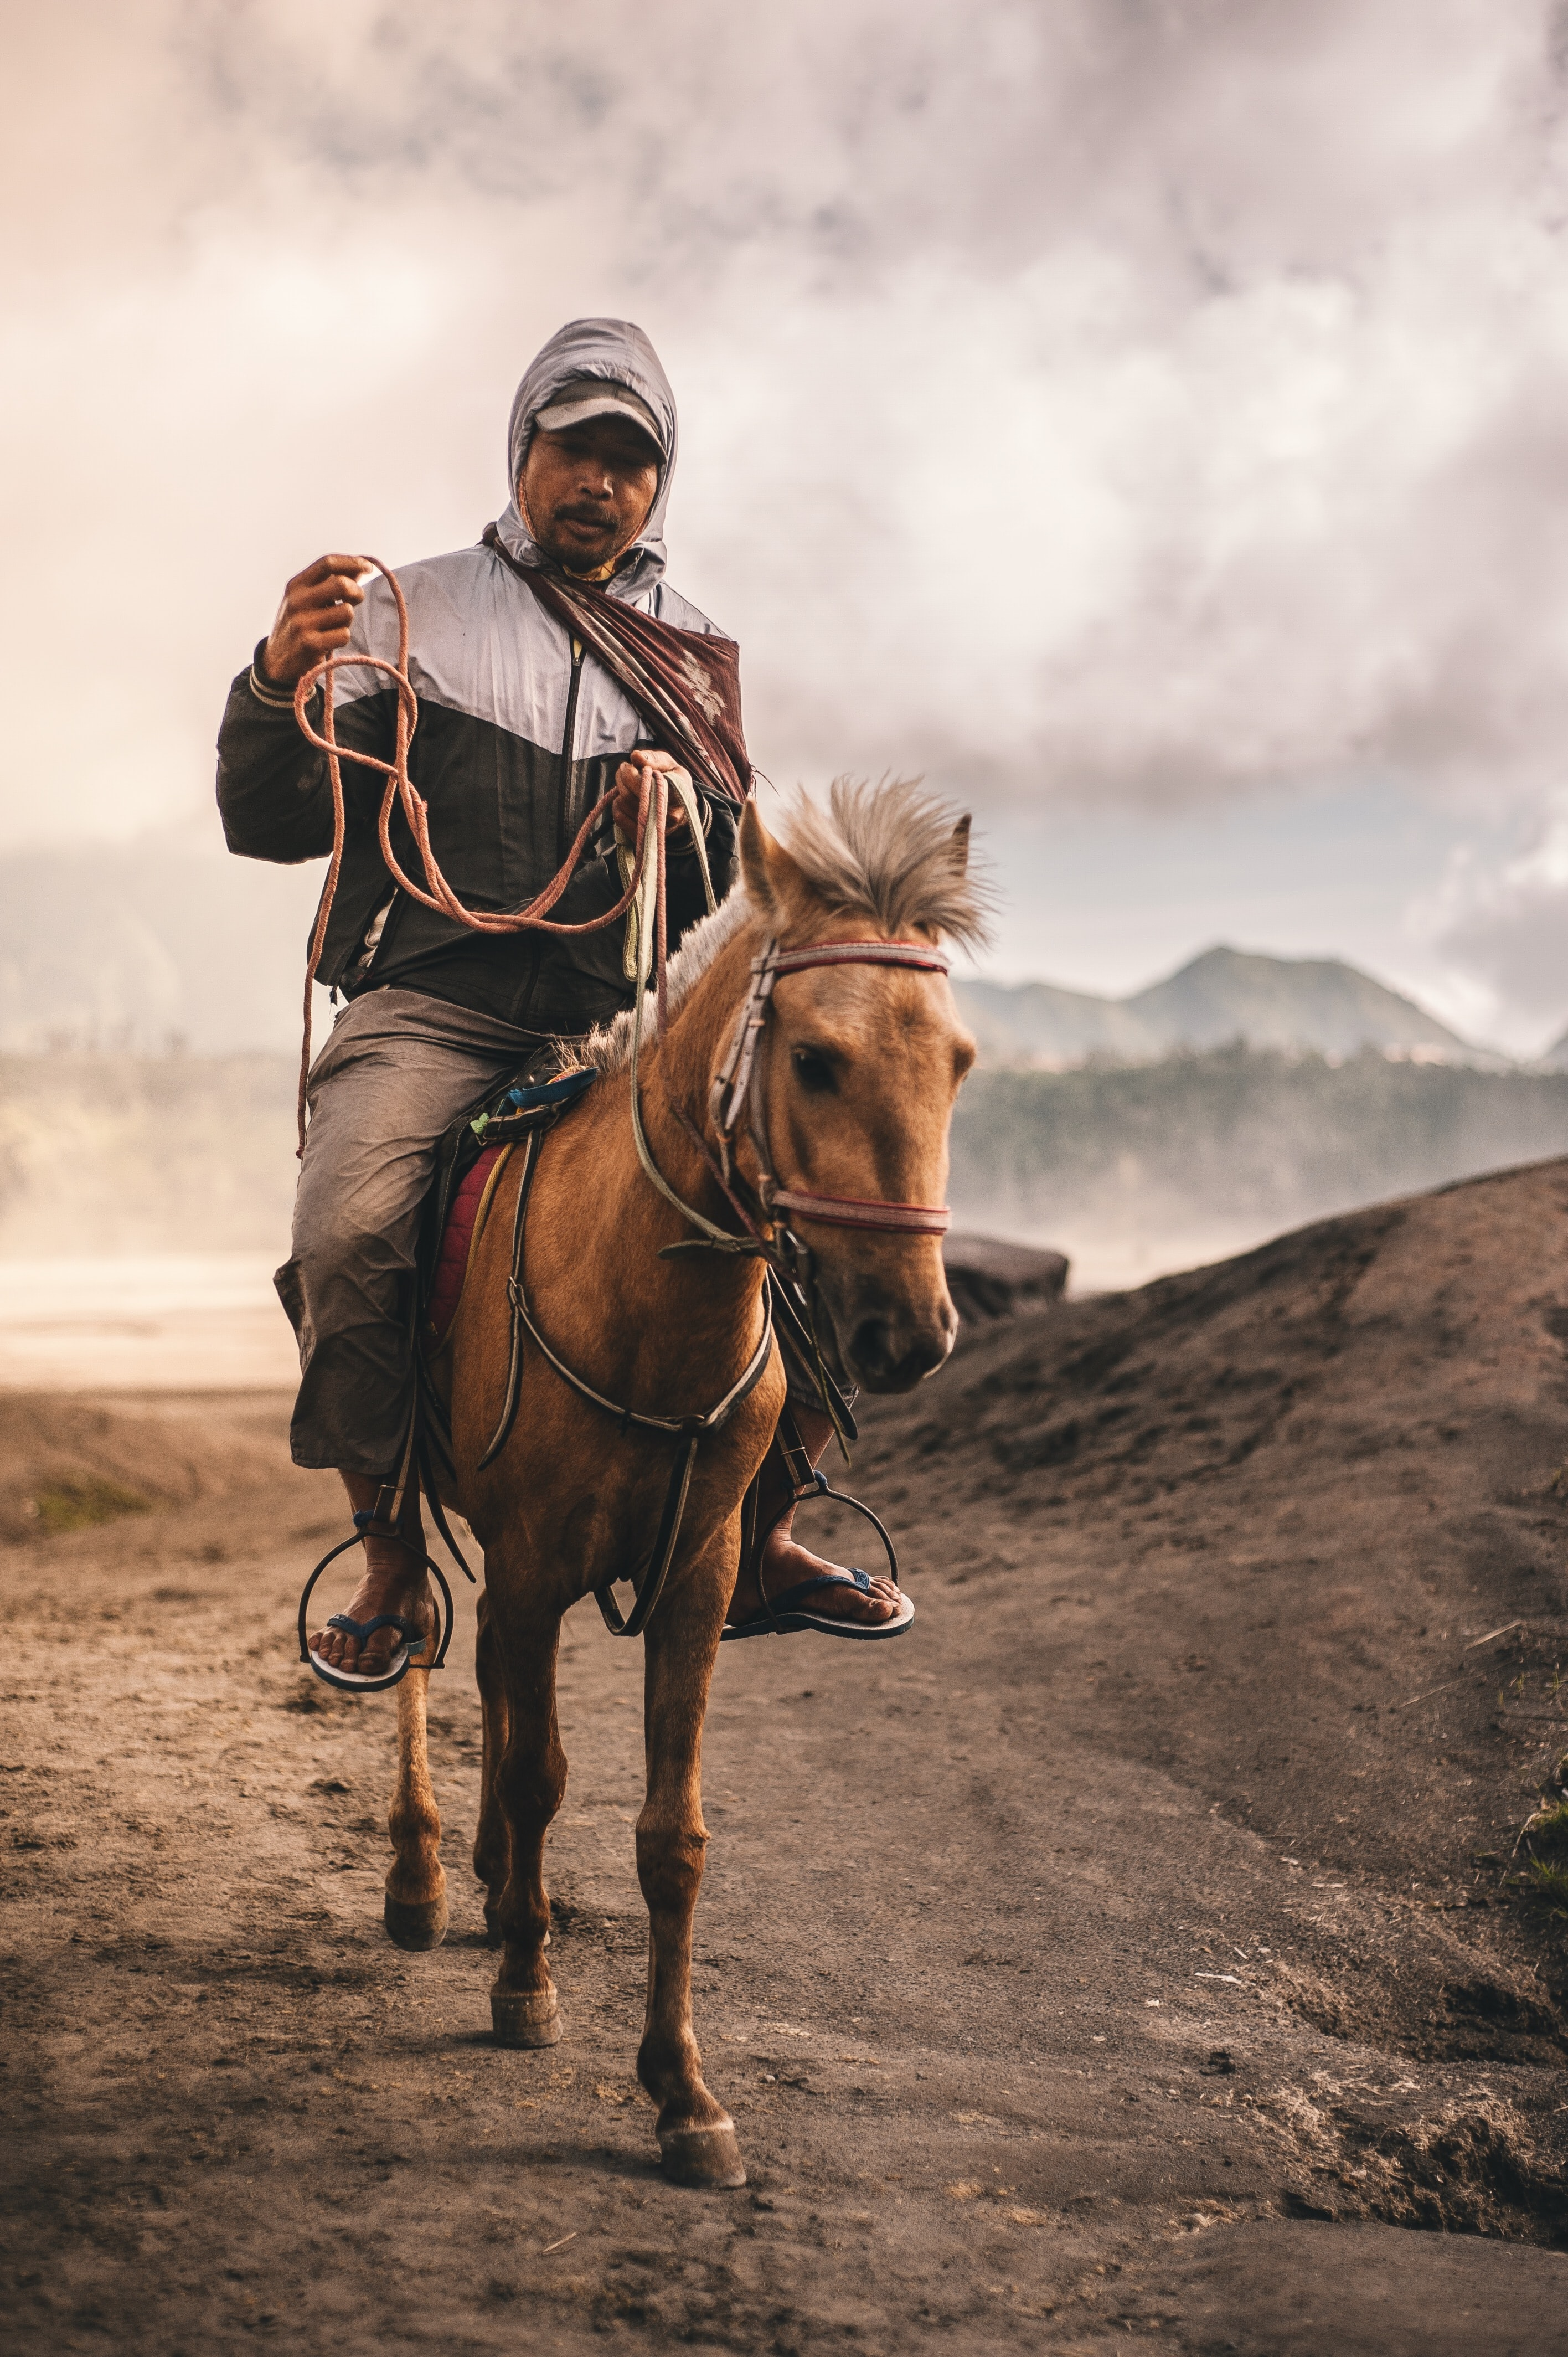 man riding horse under cloudy skies